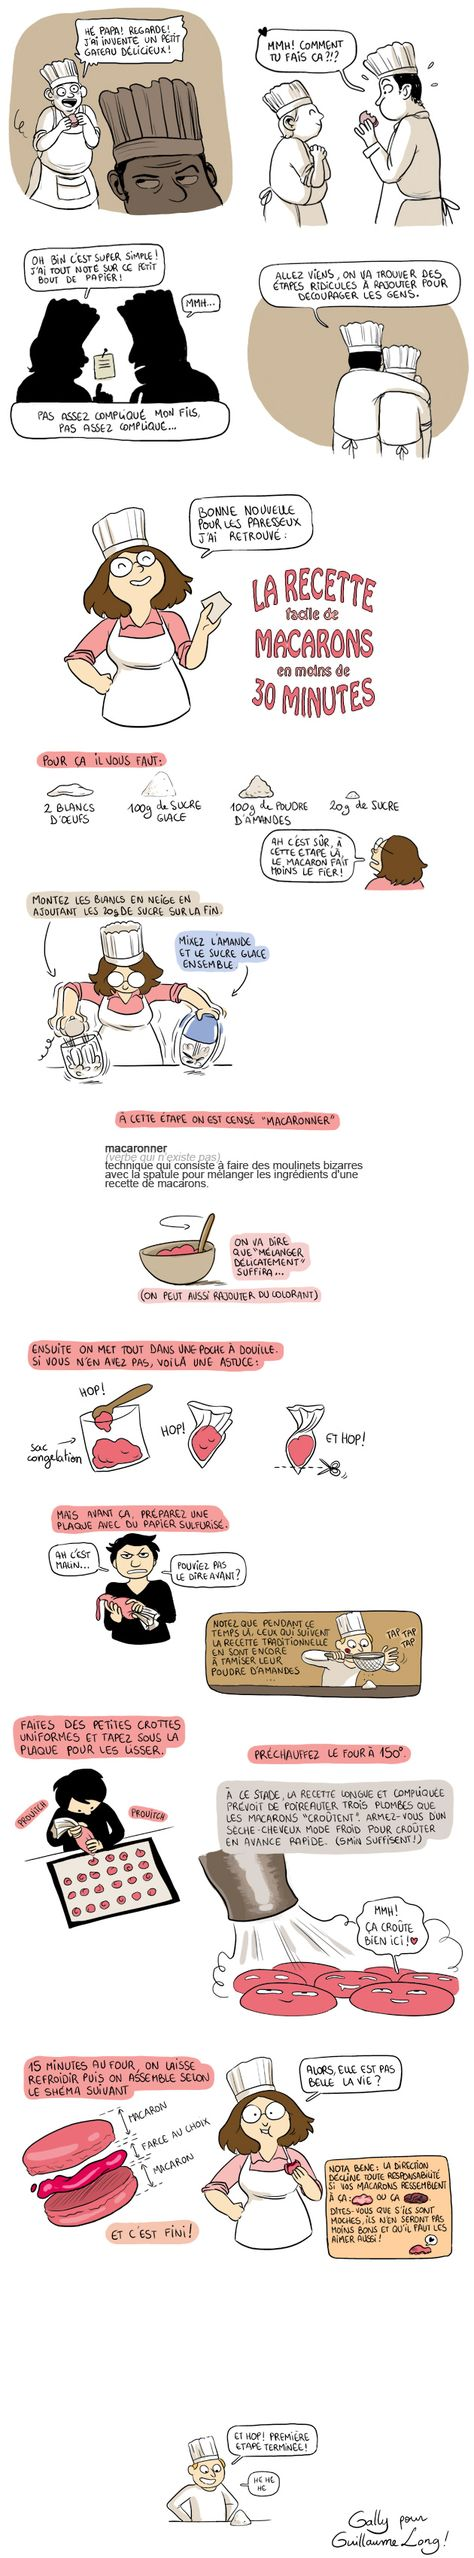 """Macarons sans la durée"" recette de macarons facile selon Gally pour Guillaume Long, illustrateur français. http://long.blog.lemonde.fr/2012/03/20/macarons-sans-la-duree/"